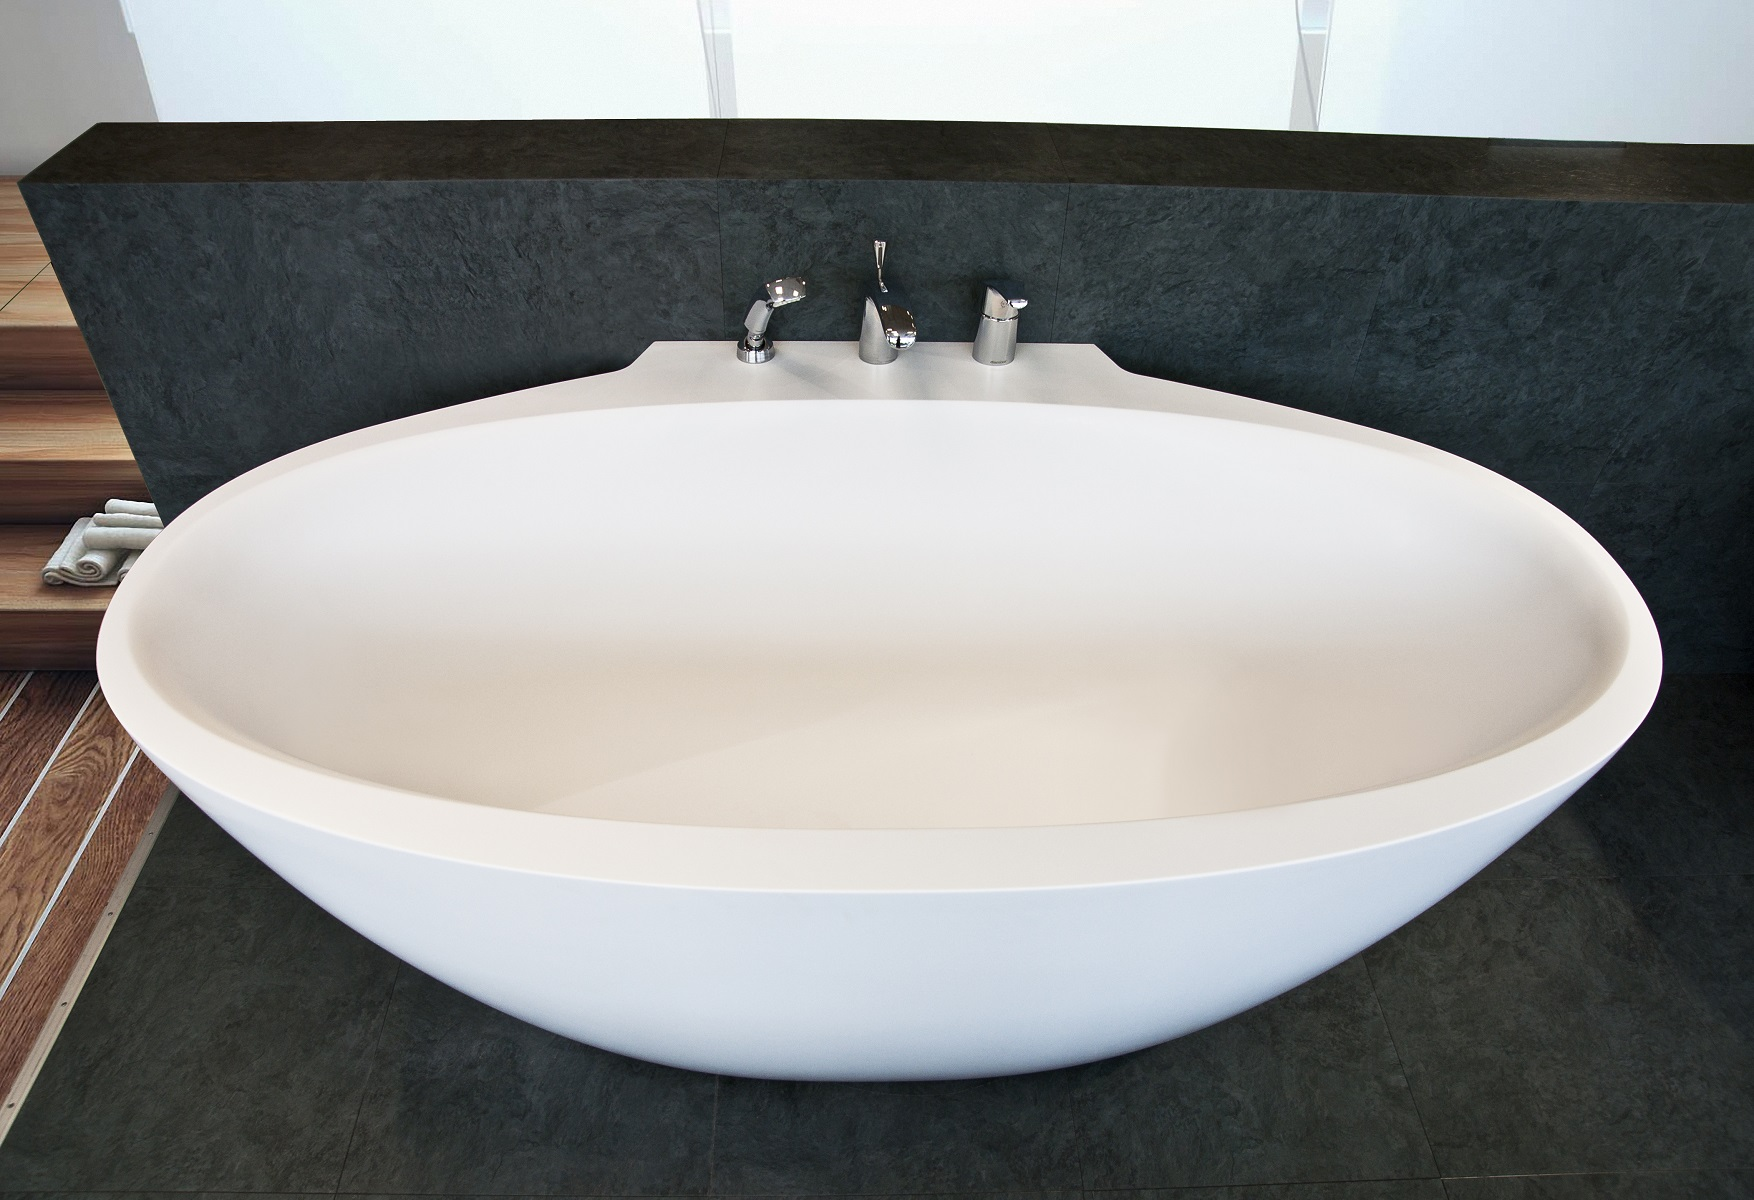 Aquatica sensuality mini wall back to wall solid surface bathtub - Vasche da bagno mini ...